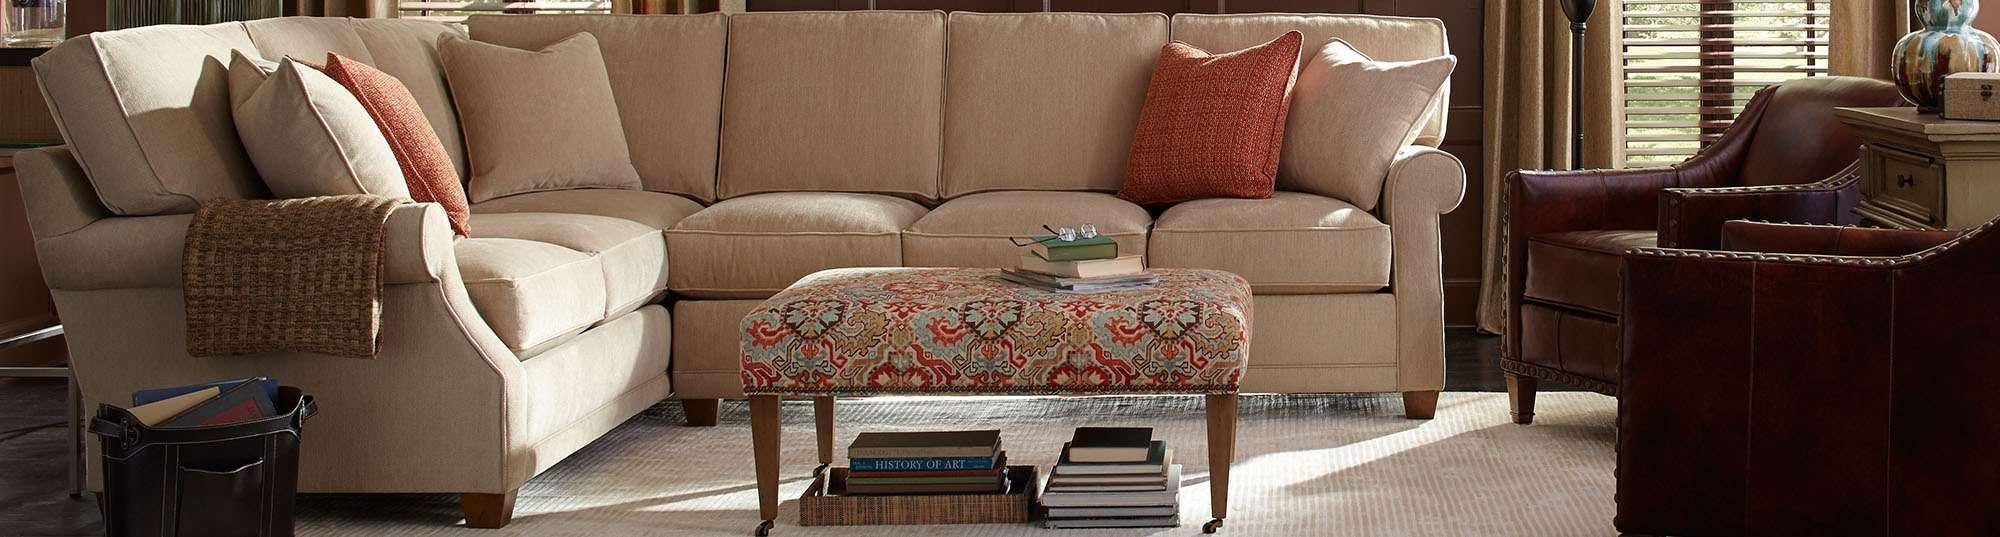 Sofas Center : Baker Sofa Rowe Furniture Robin Bruce Slipcover For Rowe Sectional Sofas (Image 18 of 20)